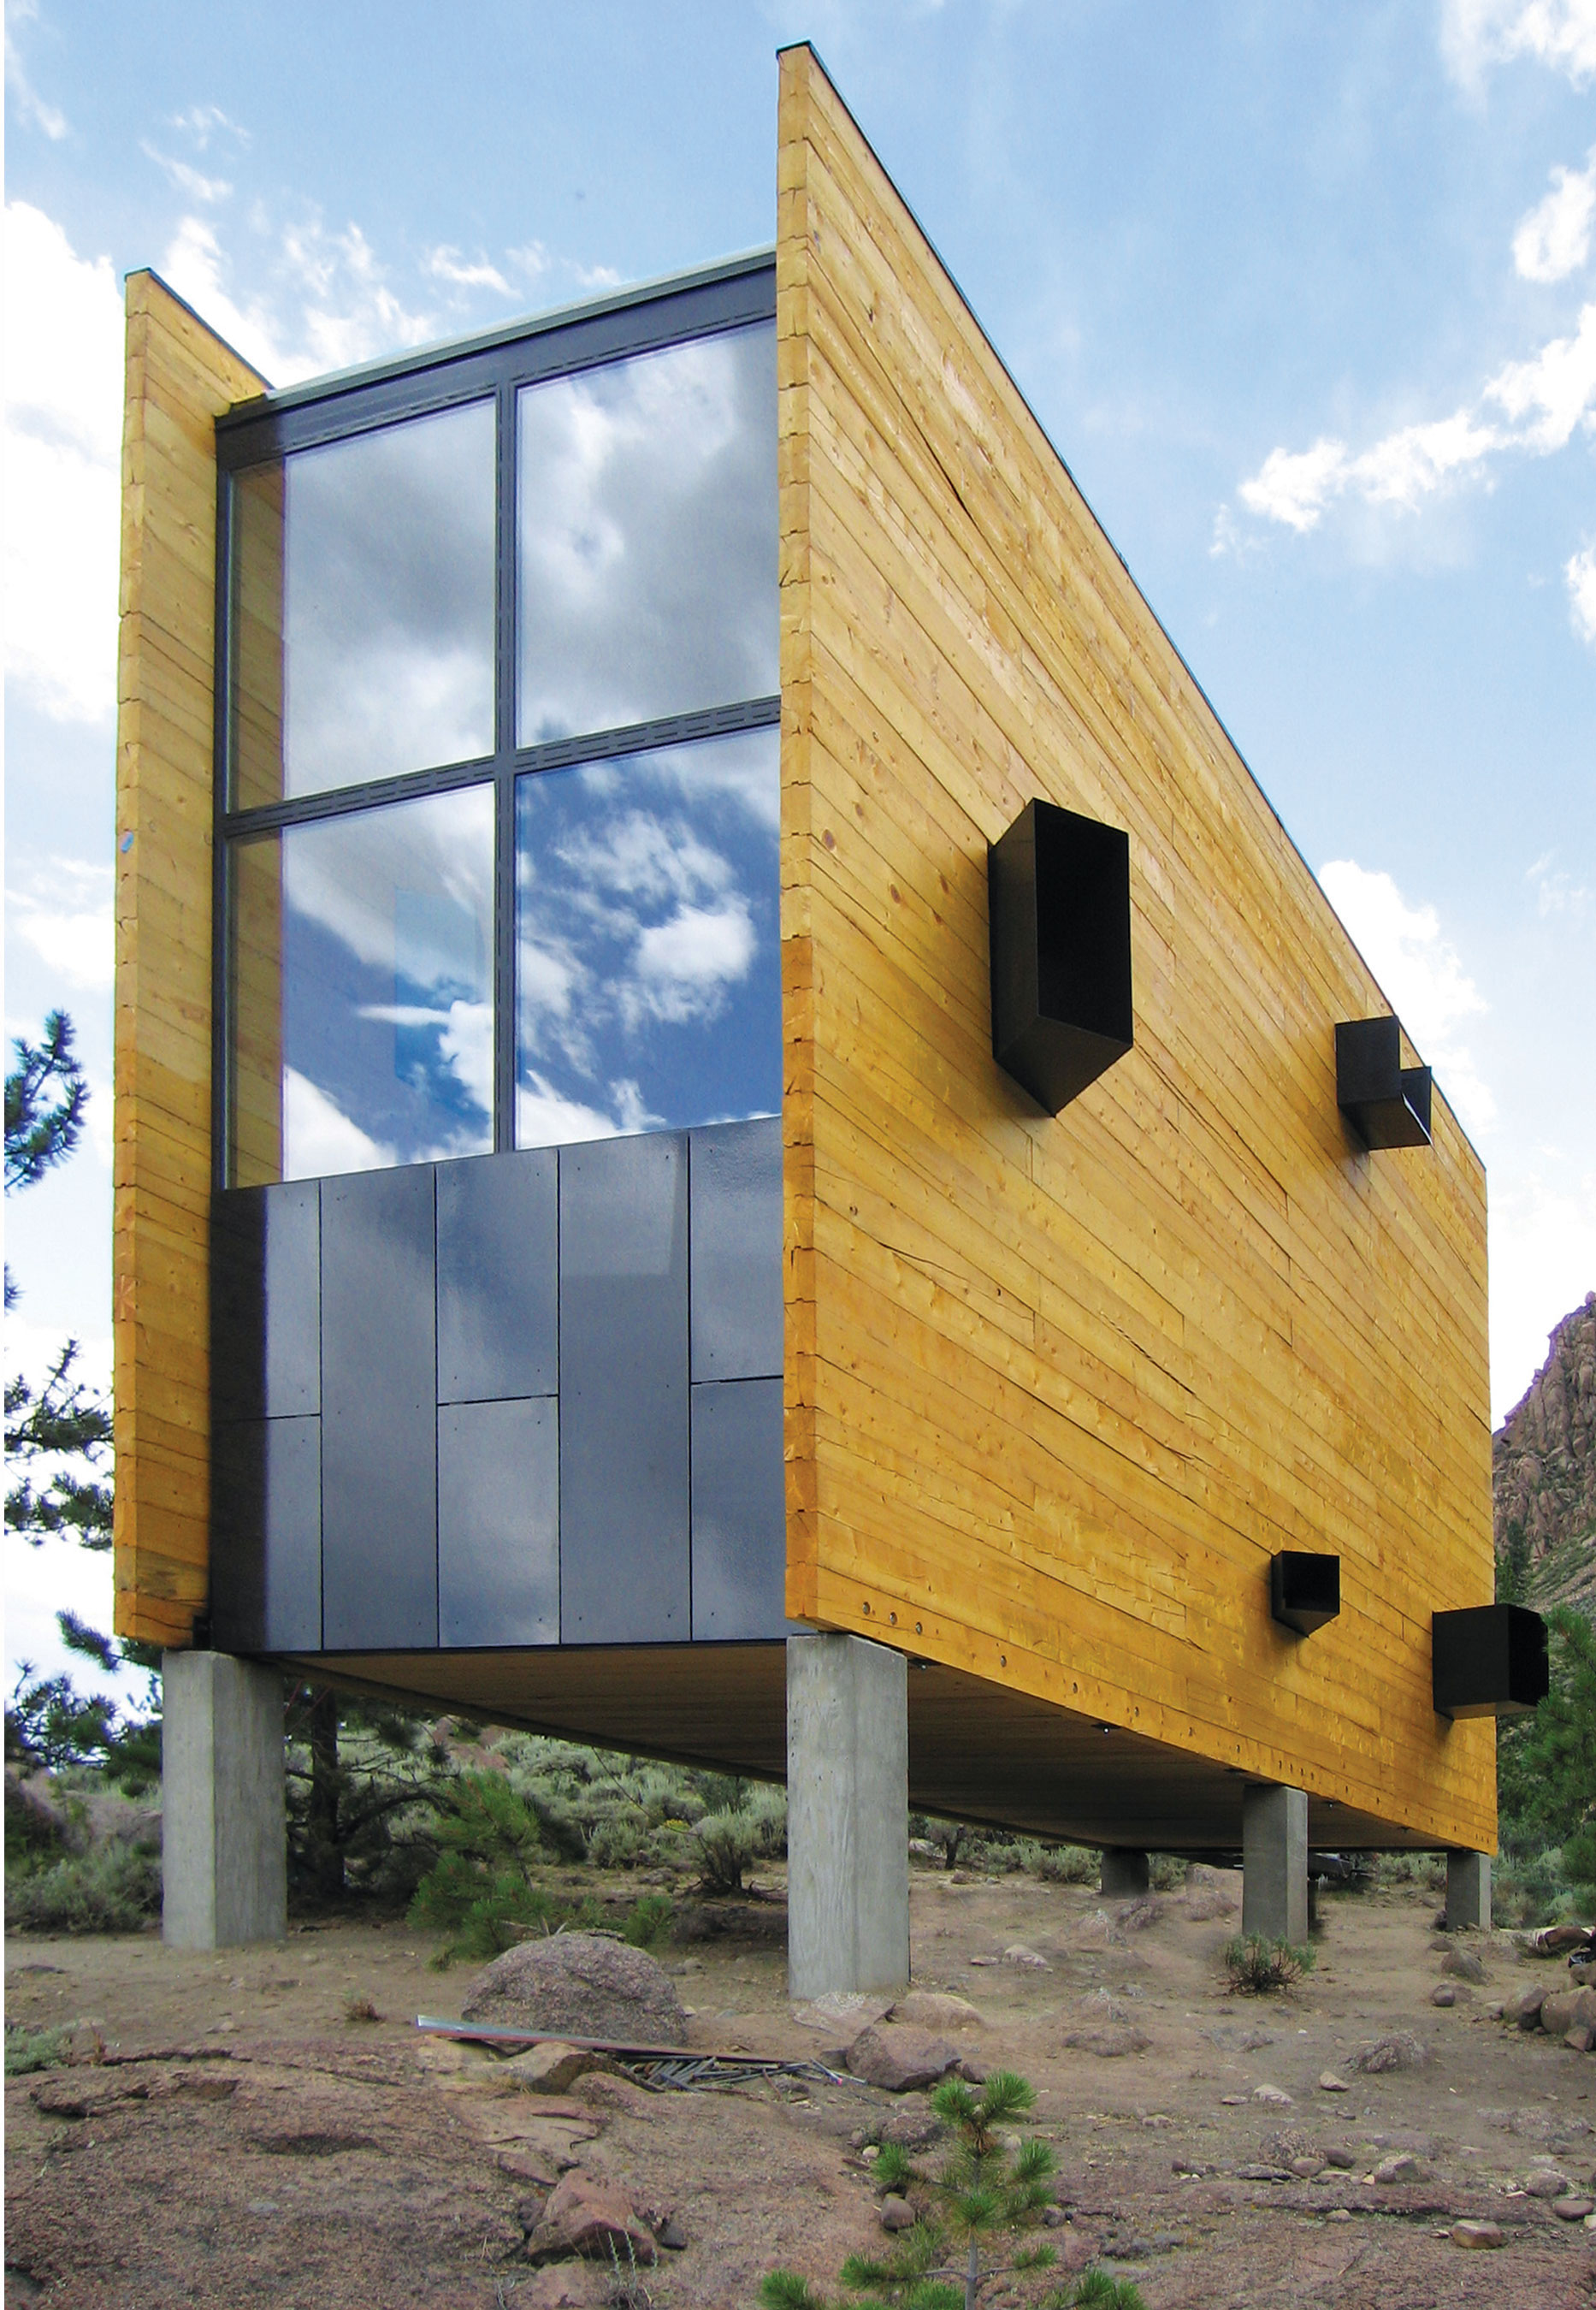 Prof. Kiel Moe's design techniques are seen in this wooden structure erected in Colorado